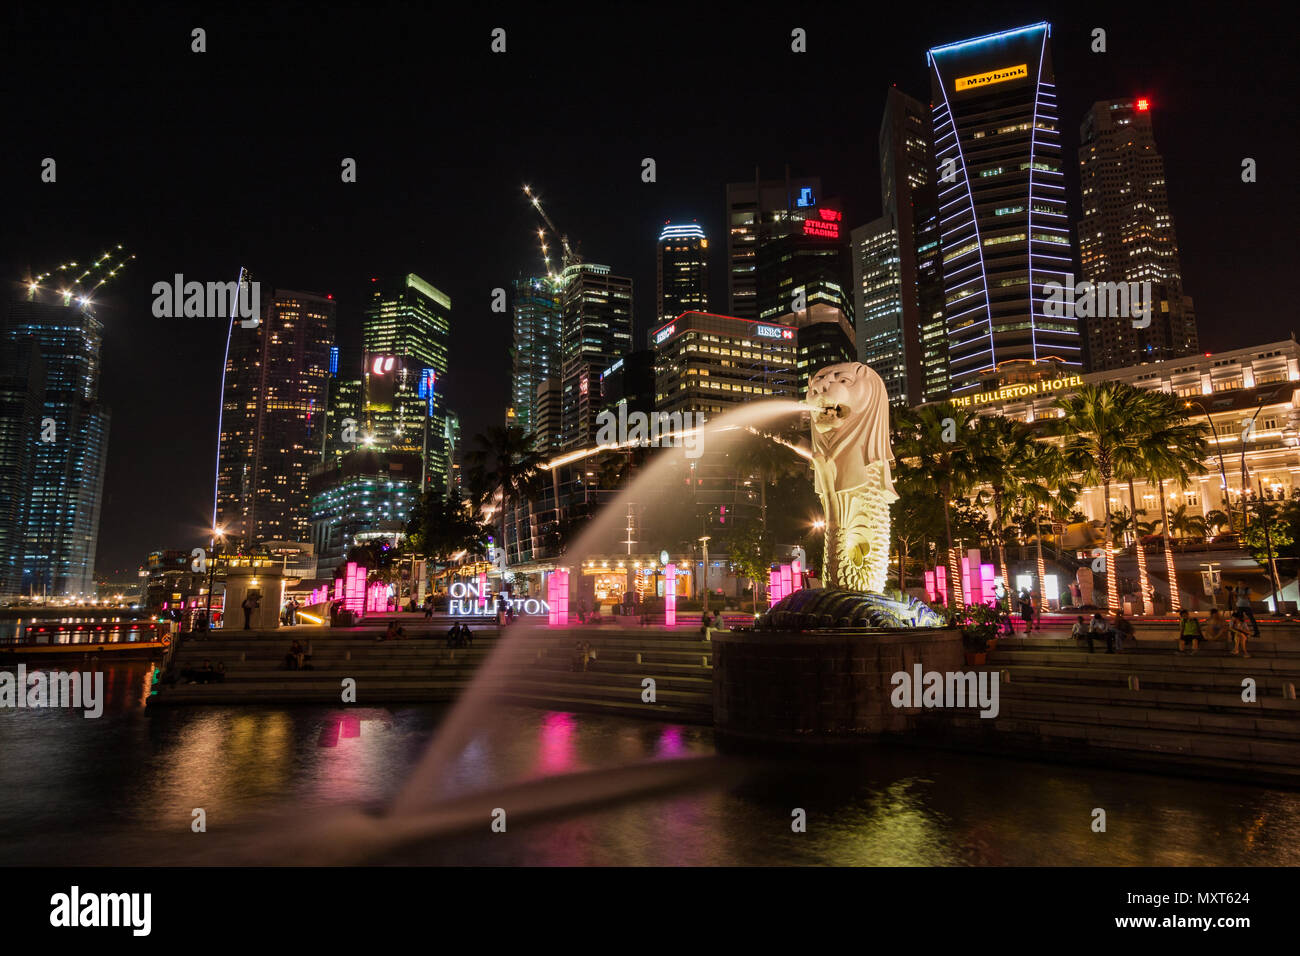 Singapore. night view of the city center. april 2010 - Stock Image